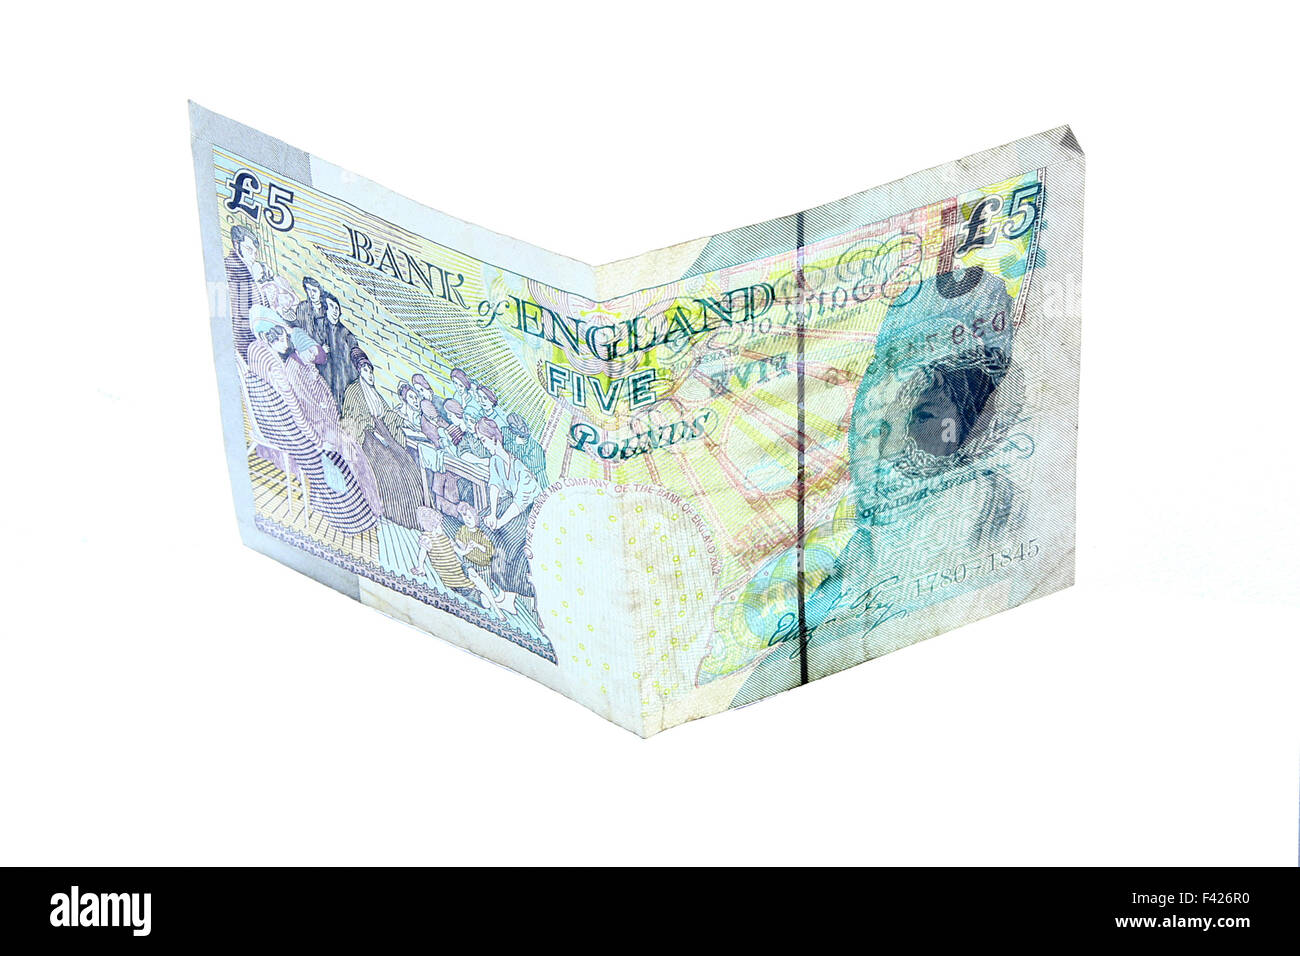 new five 5 pounds banknote greenback paper money isolated on white - Stock Image